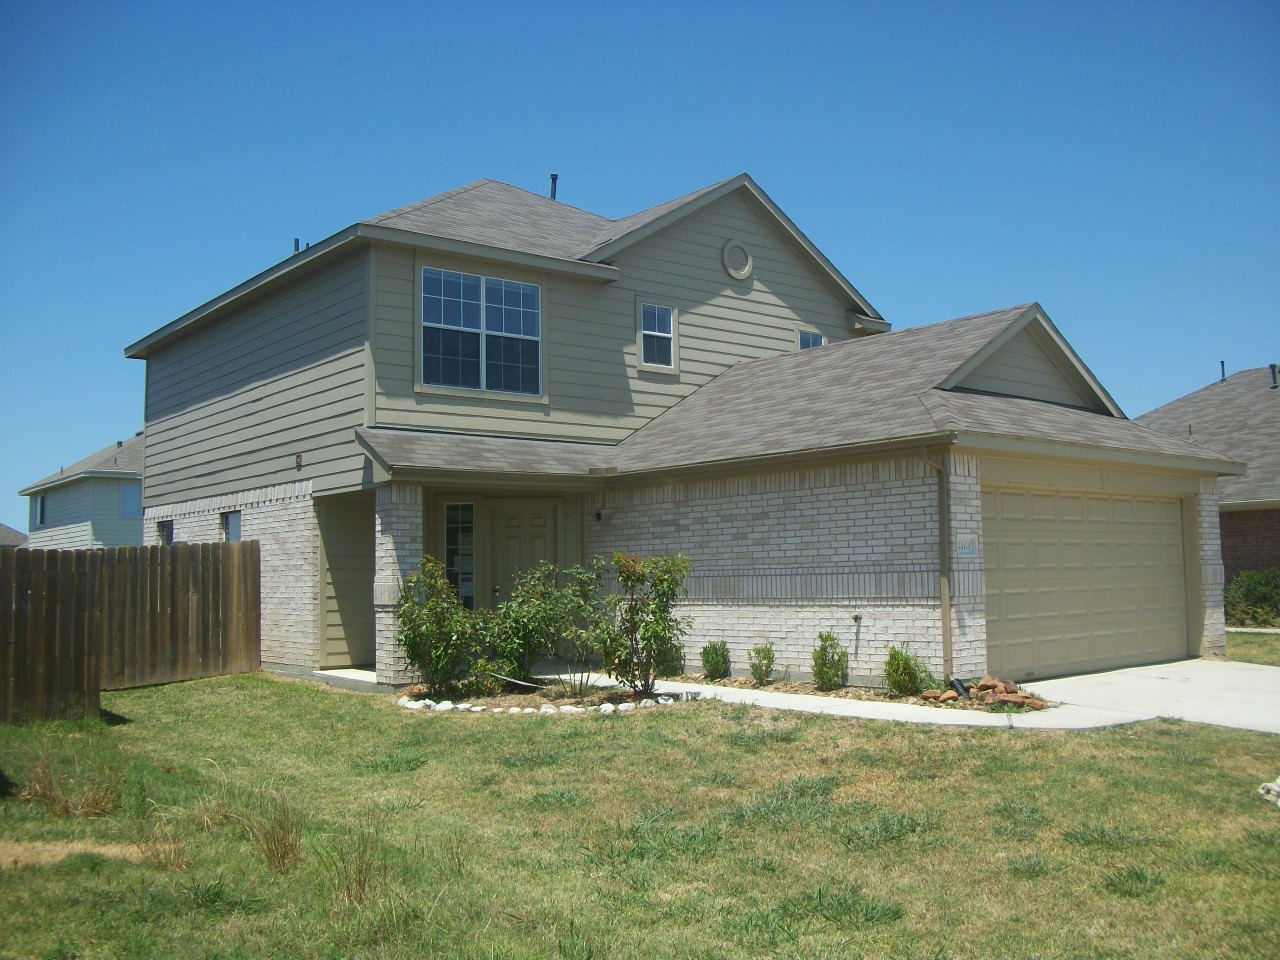 Oremac rentals 3 bedroom single family home for rent in 3 bedroom single family homes for rent